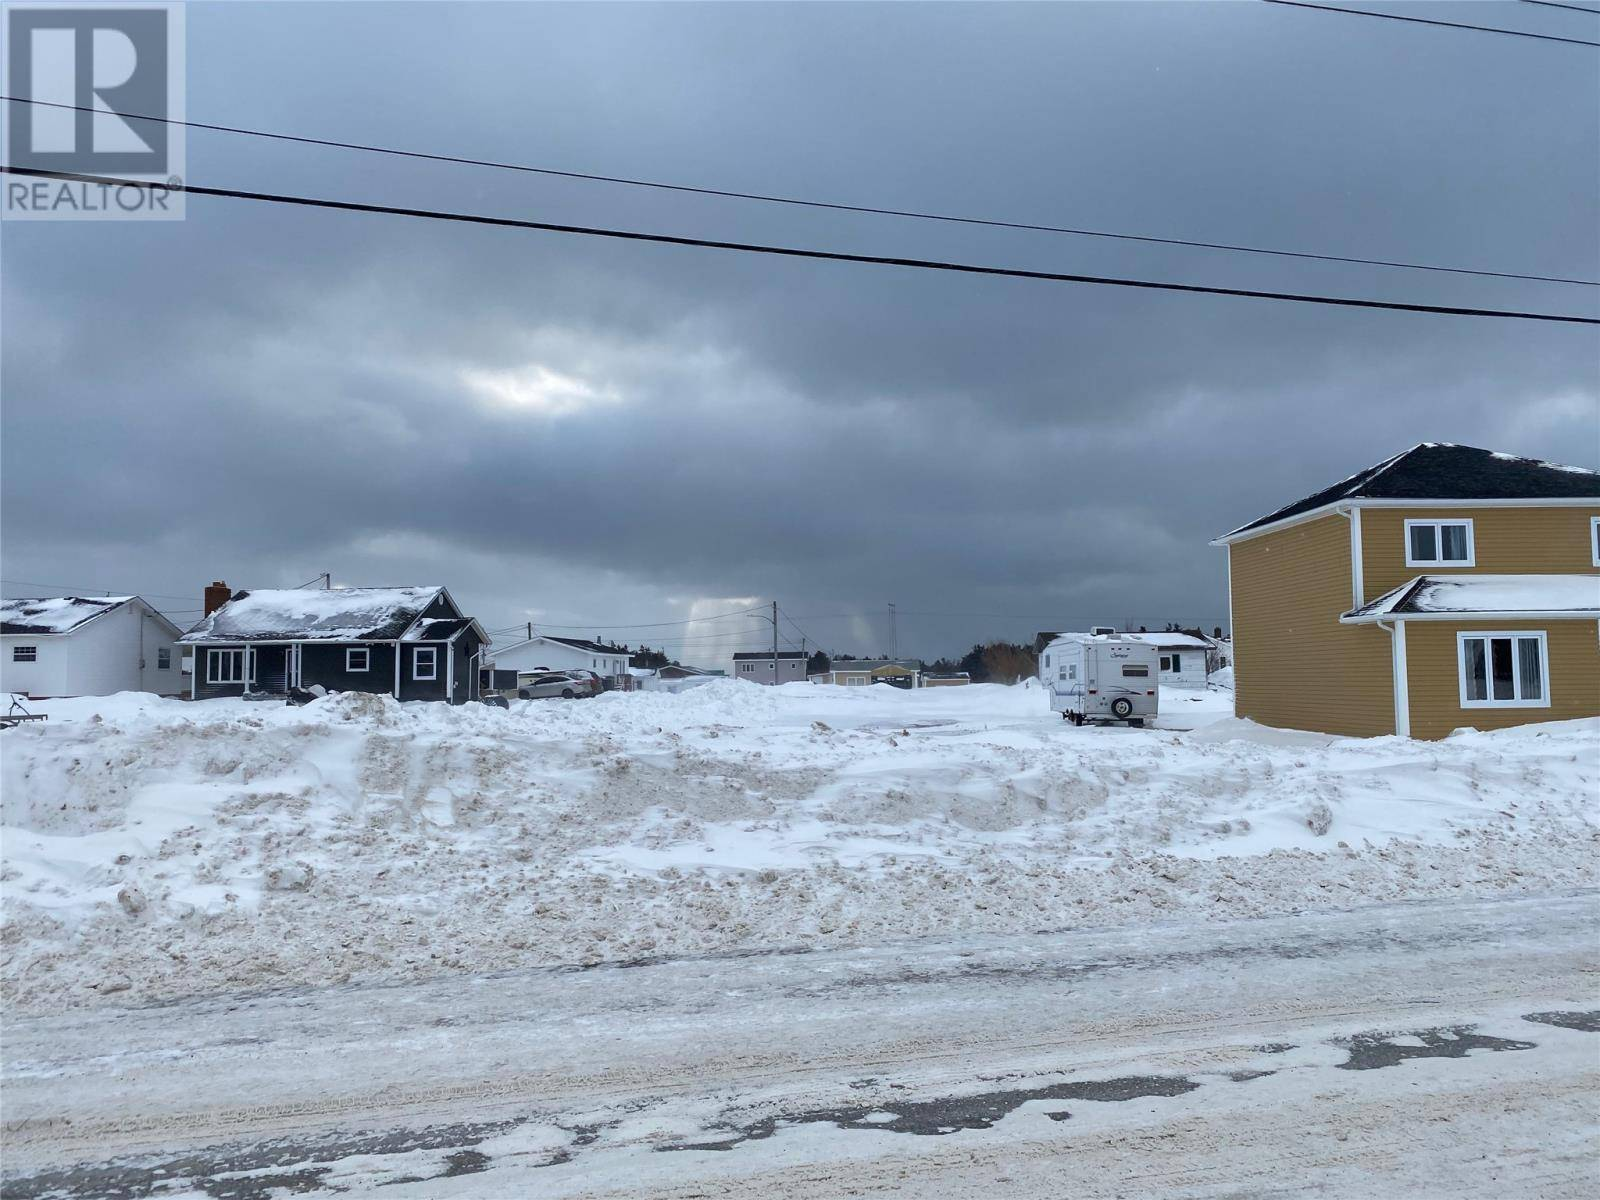 Home for sale at 37 Main St Stephenville Crossing Newfoundland - MLS: 1211553